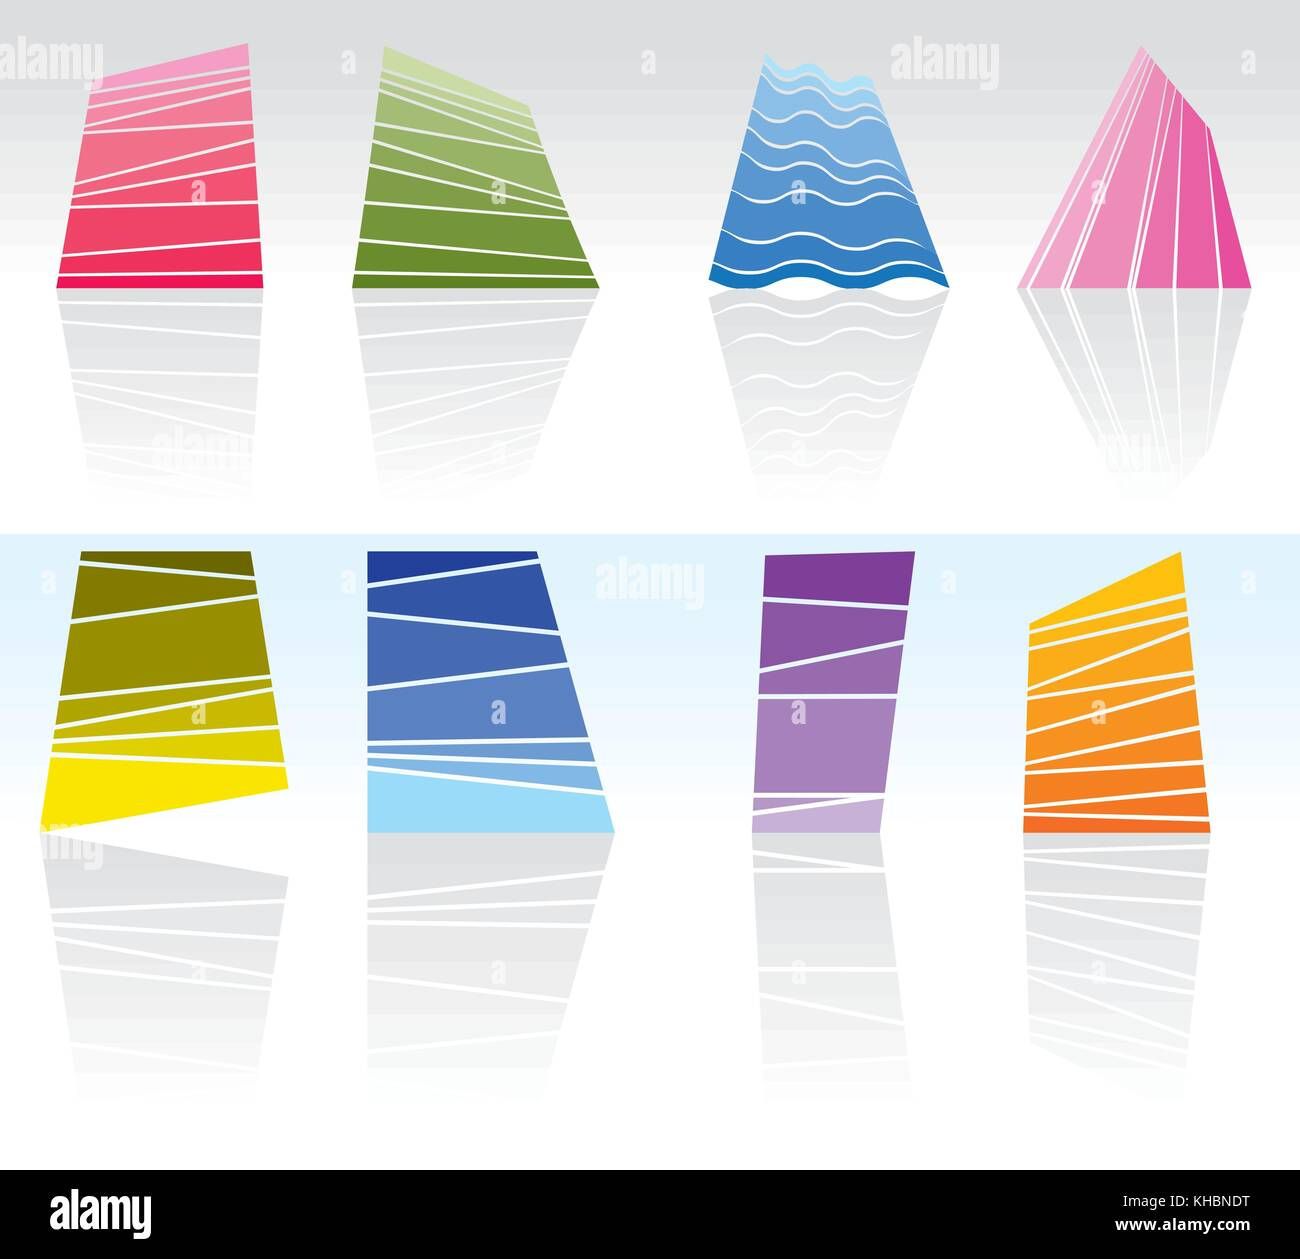 abstract and  pattern vector design - vector illustration - Stock Image